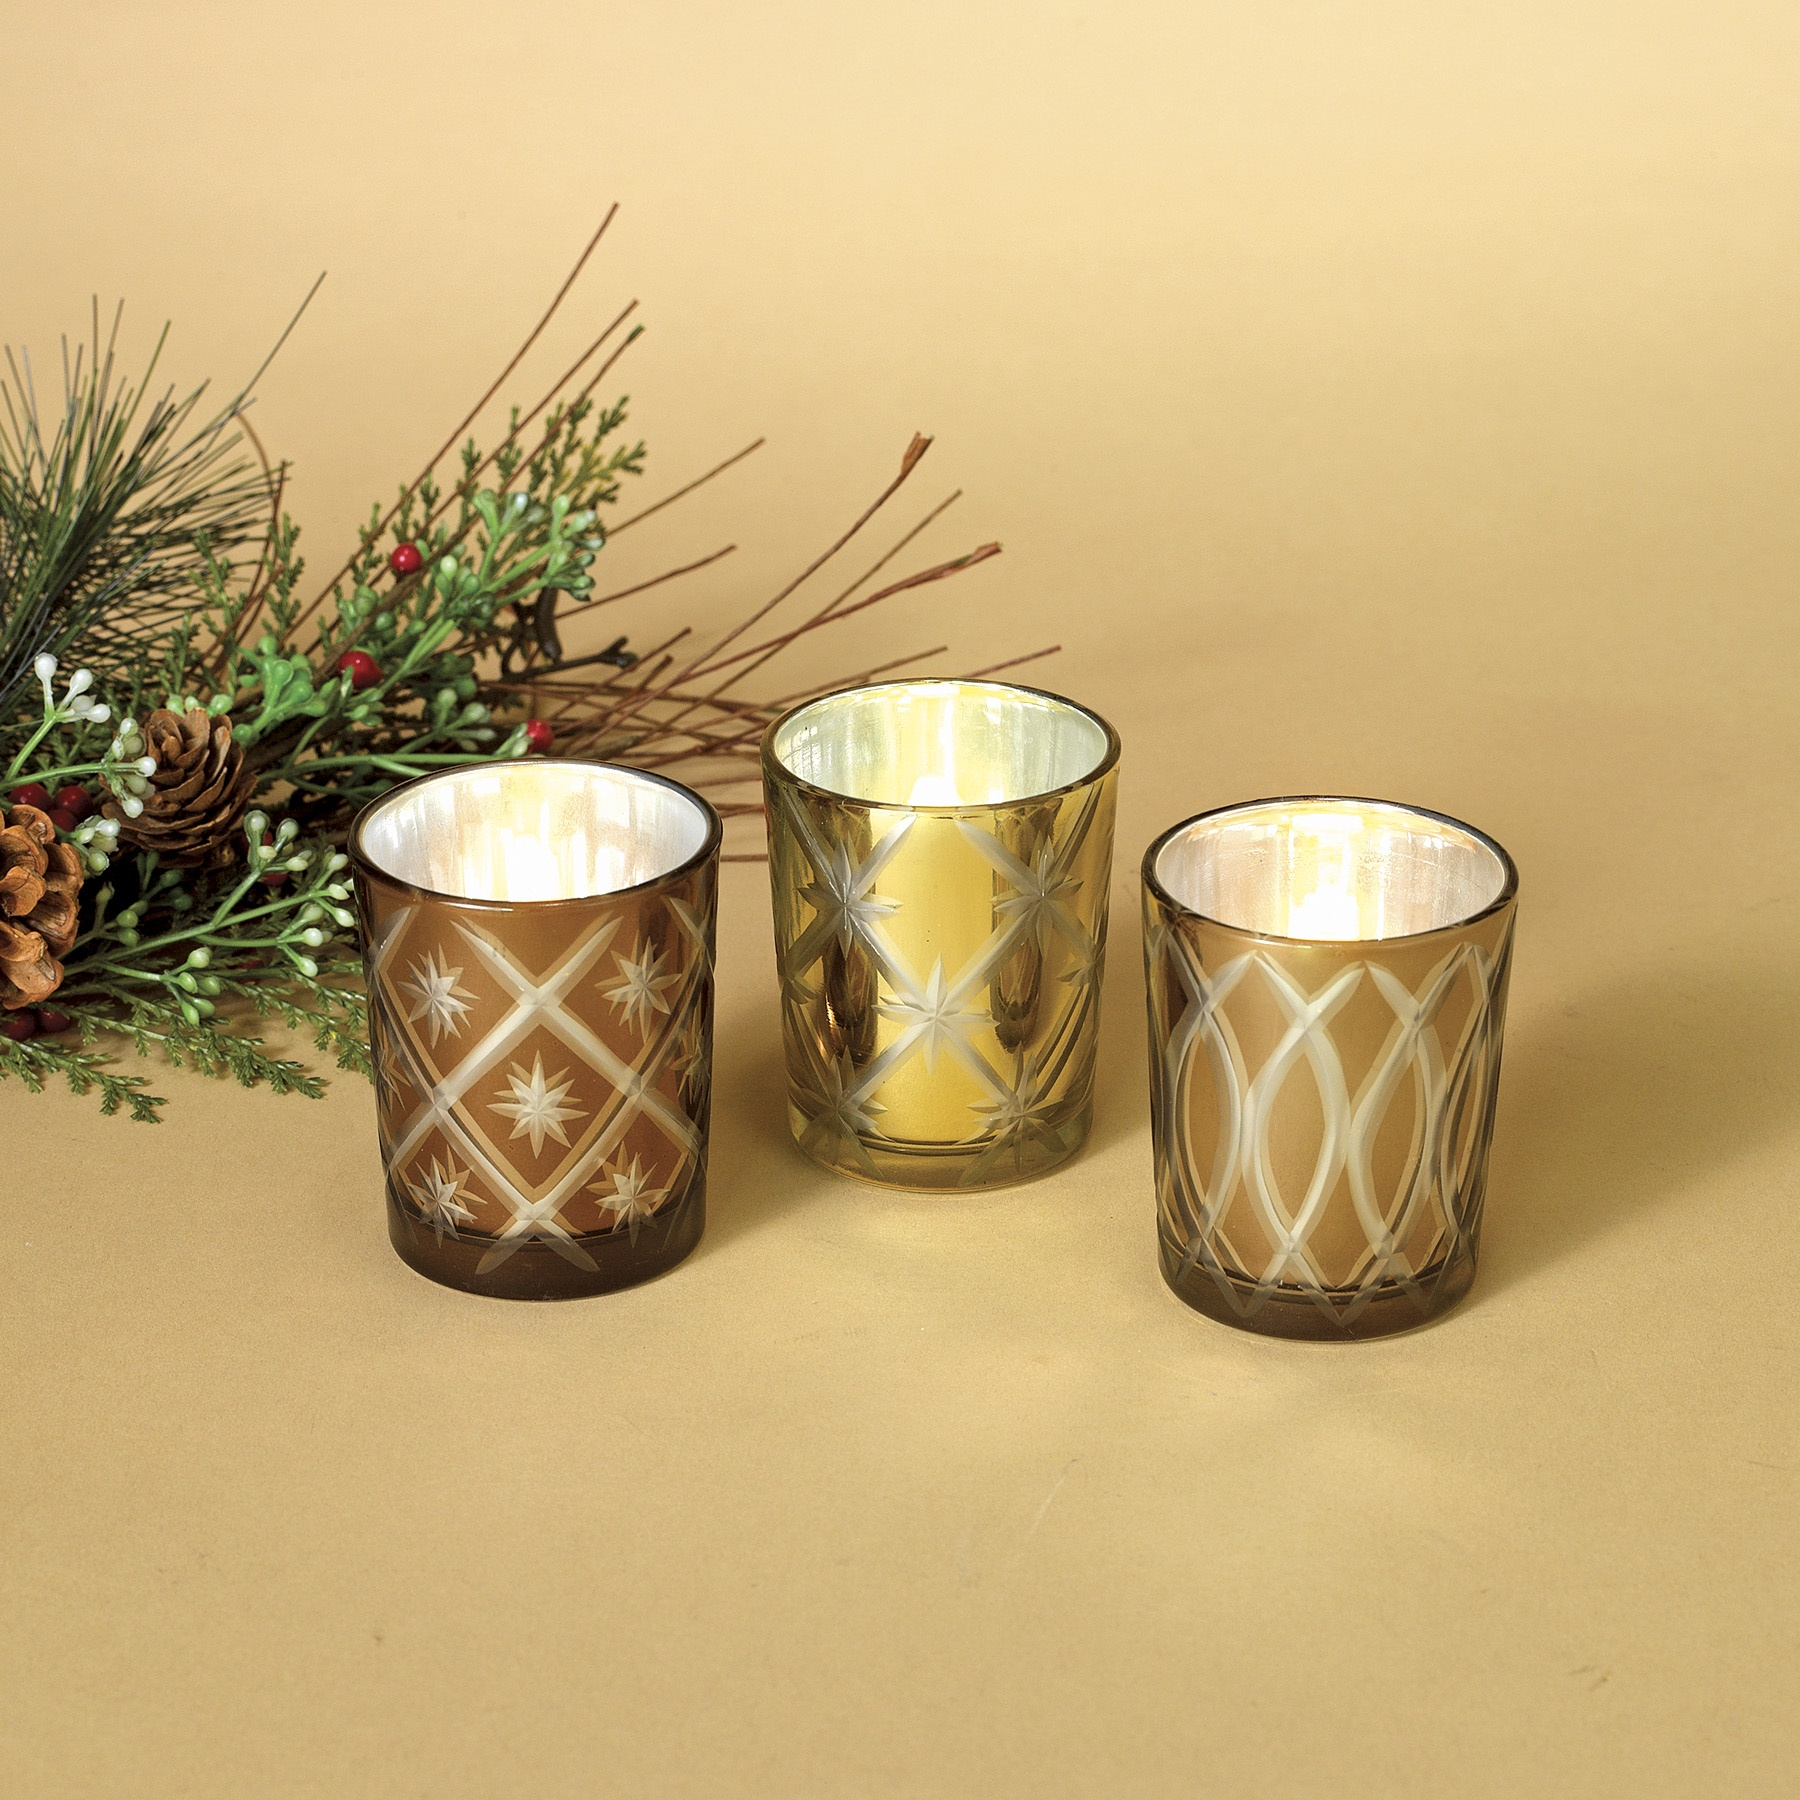 Christmas Candle Holders Golden Glass Candle Holders 3